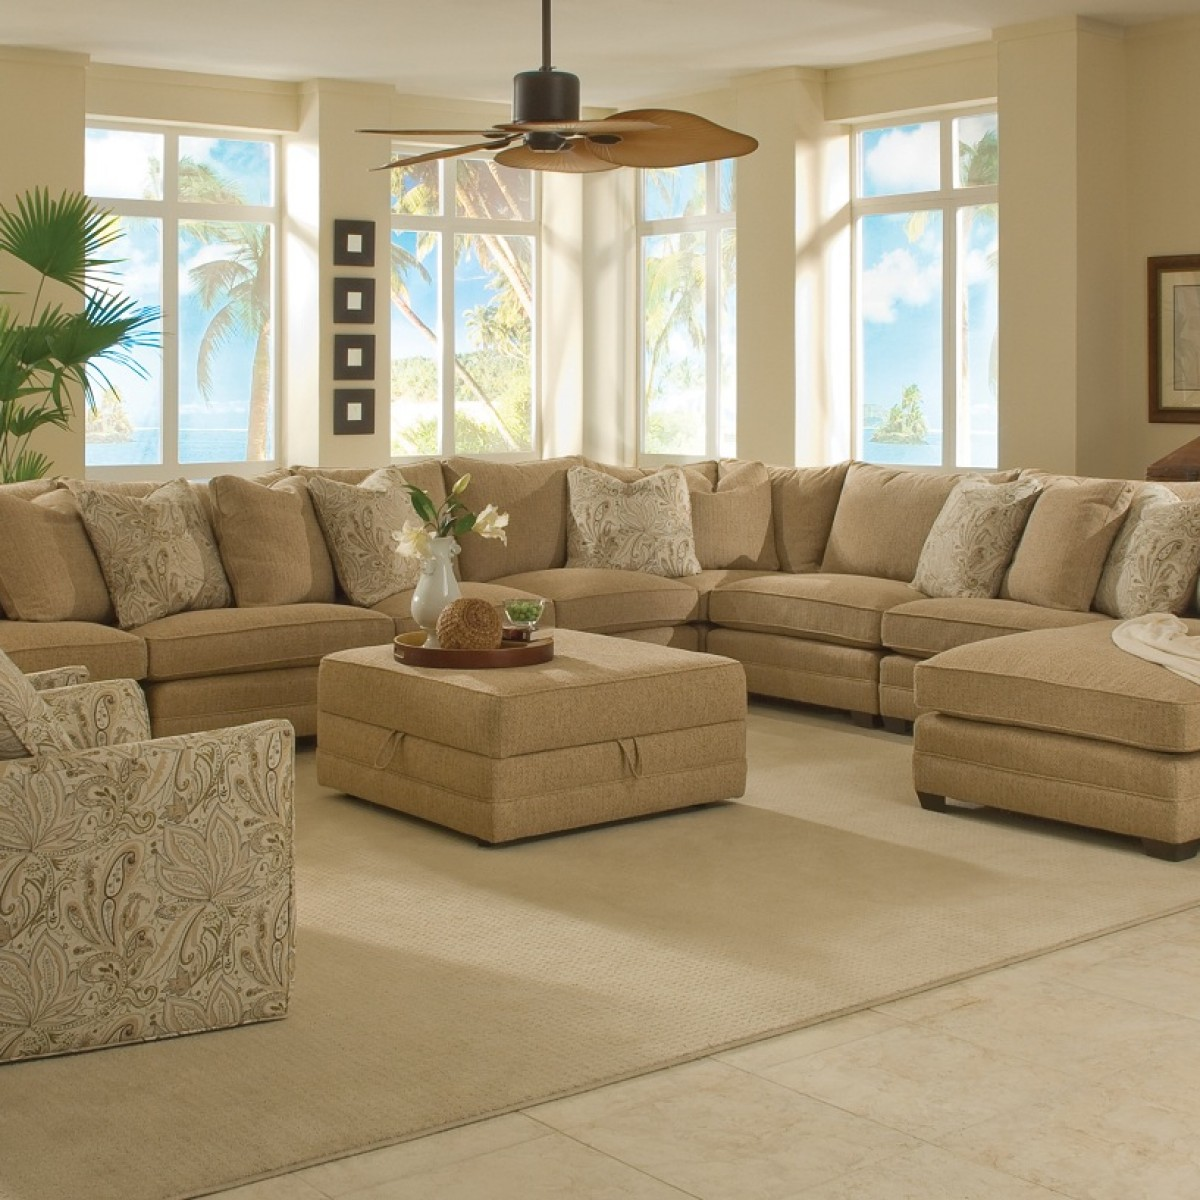 Discount Large Sectional Sofas: Furniture: Large Sectional Sofas